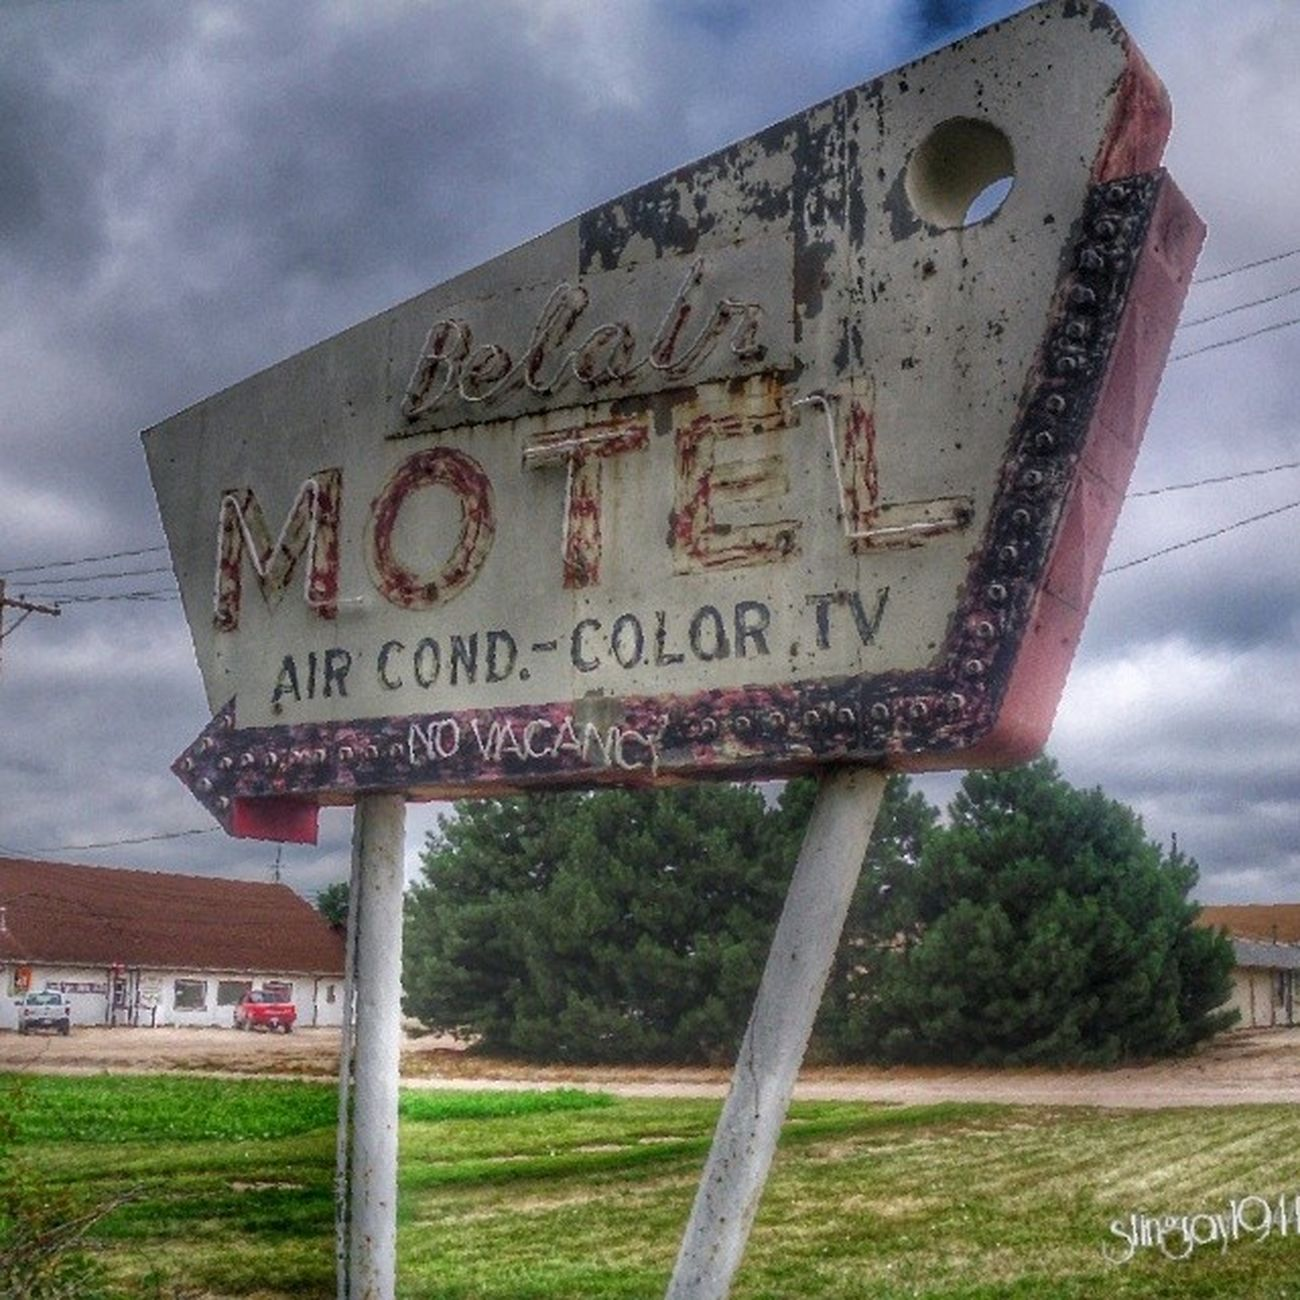 You at the Bel Air motel sign from the other side. Rous_roadsigns Signswitharrows Shutterbug_collective Signgeeks splended_shotz signporn trailblazers_rurex royalsnappingartists rsa_preciousjunk rustic_world rurex_lady grimelords_badassbabes pixoddinary ipulledoverforthis igaa bipolaroid_asylum filthyfeeds infamous_family